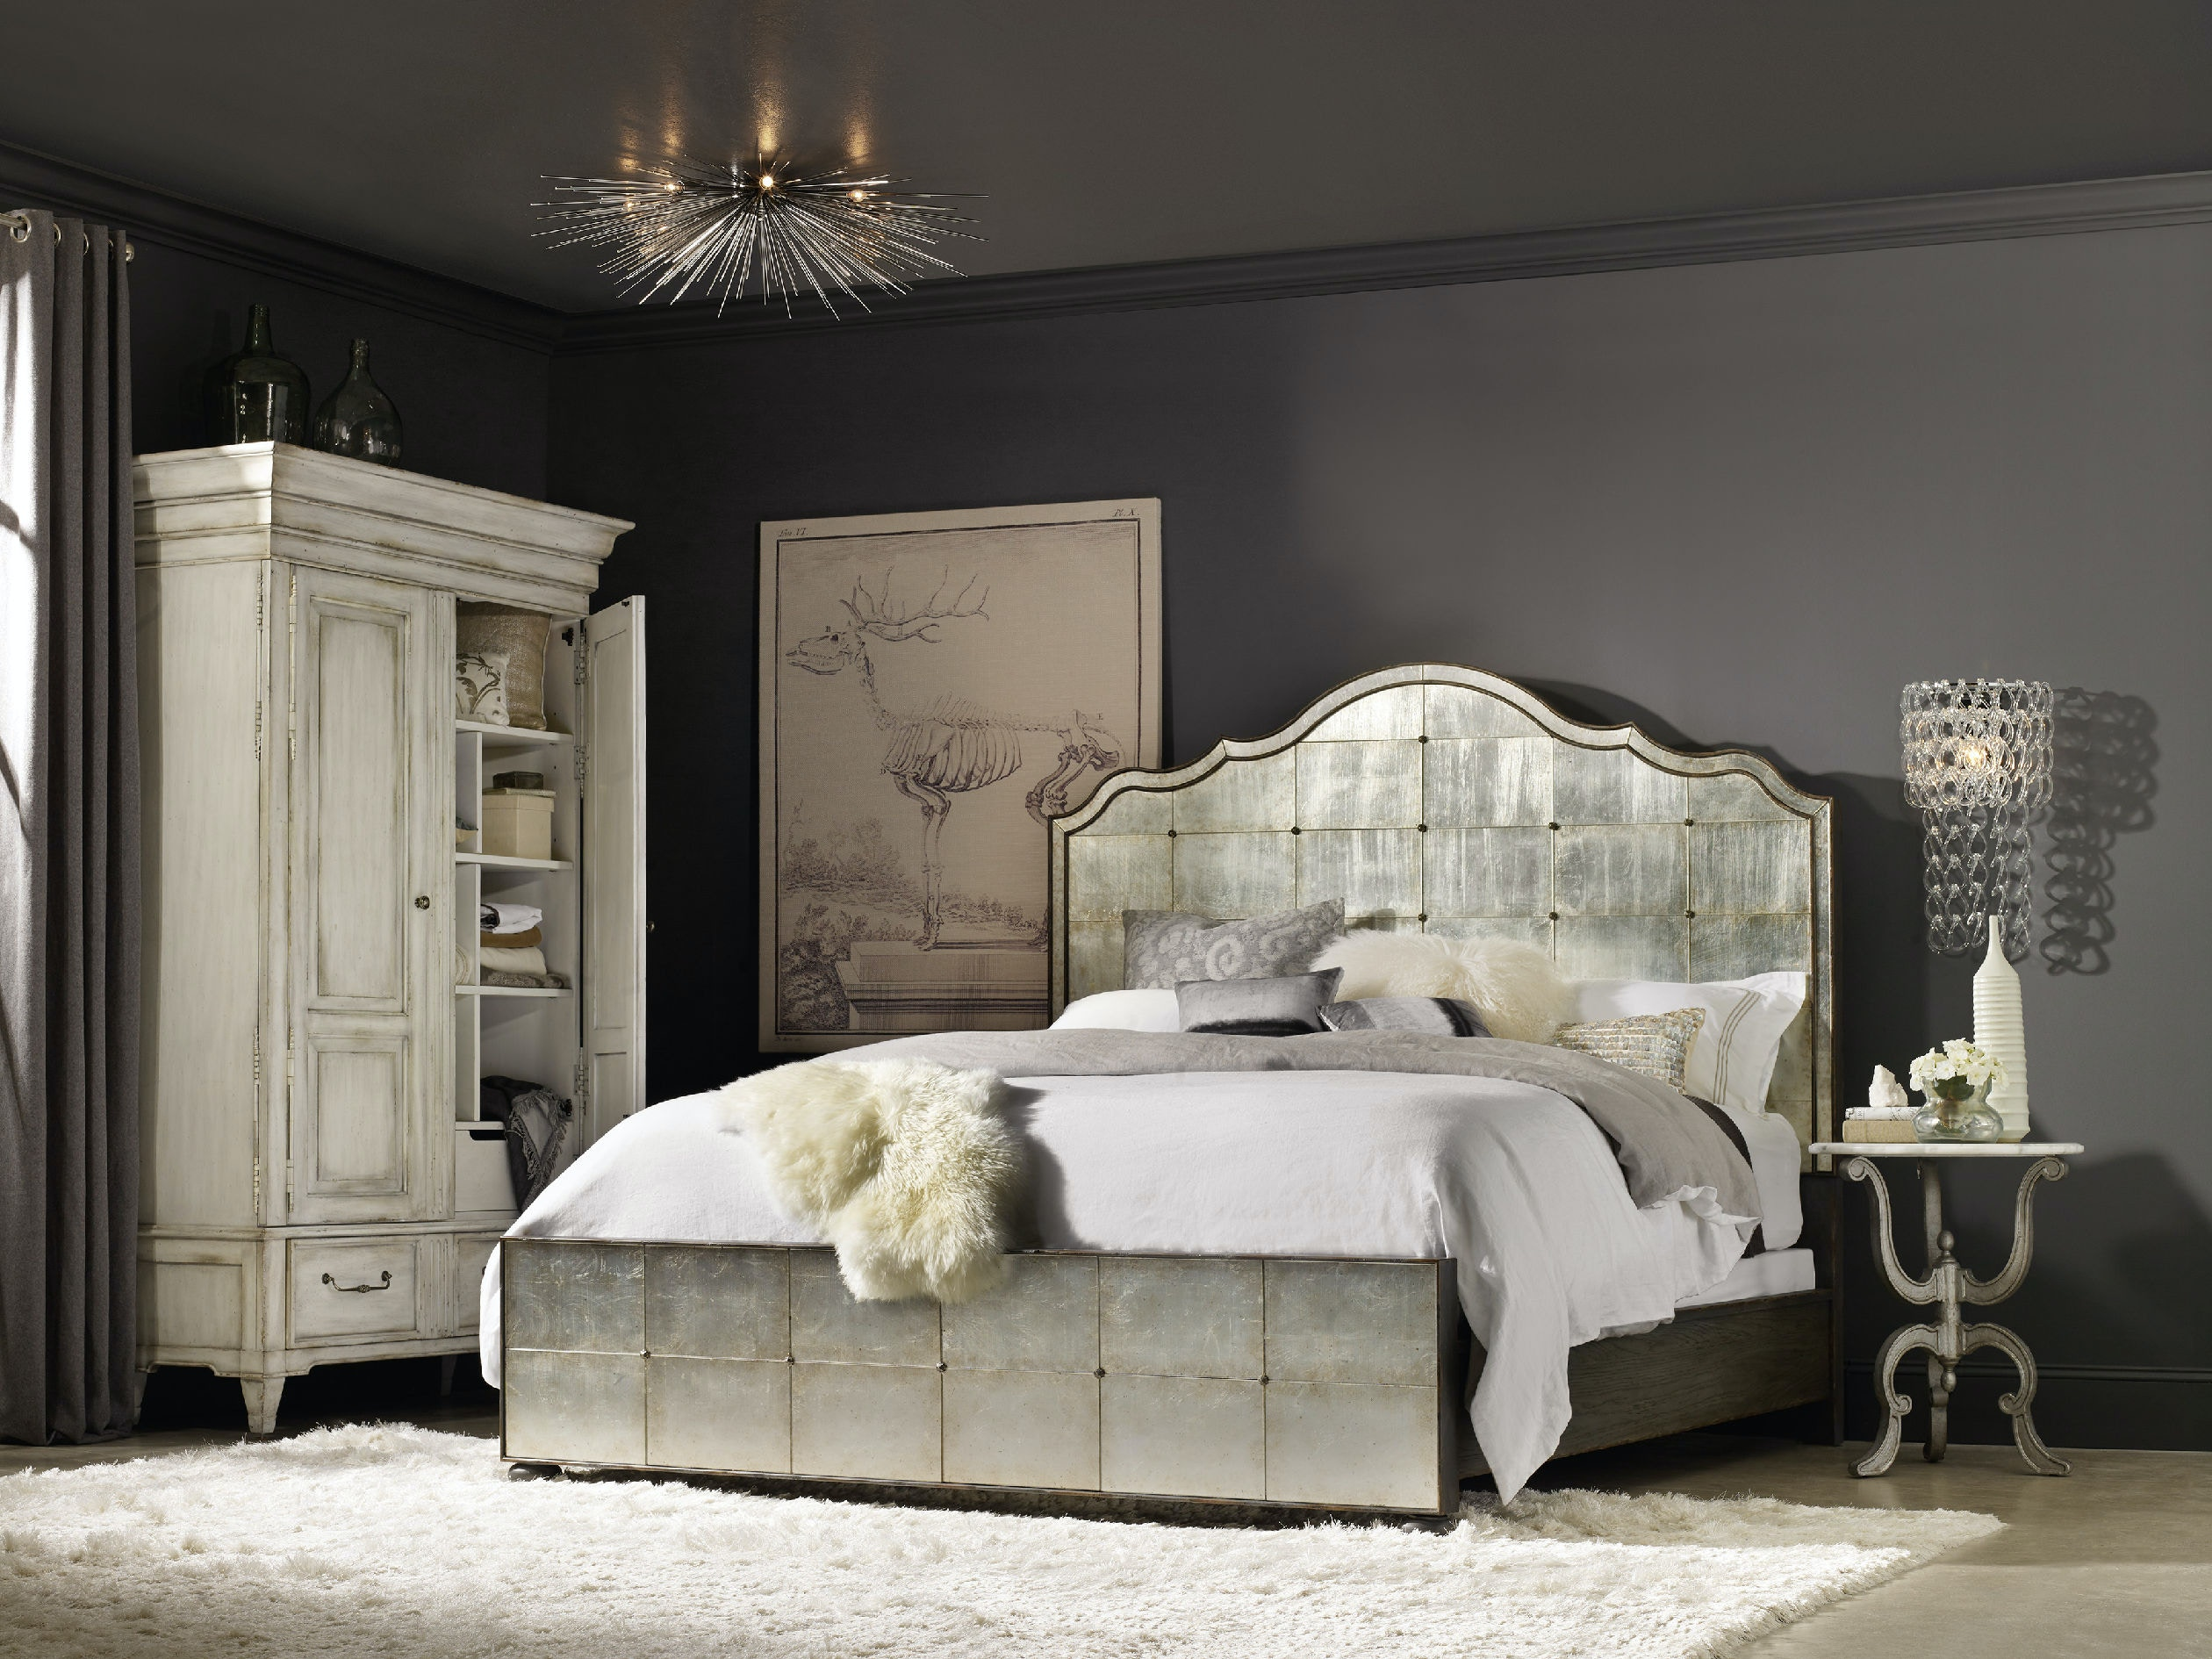 Exceptionnel Hooker Furniture Arabella King Mirrored Panel Bed 1610 90166 EGLO